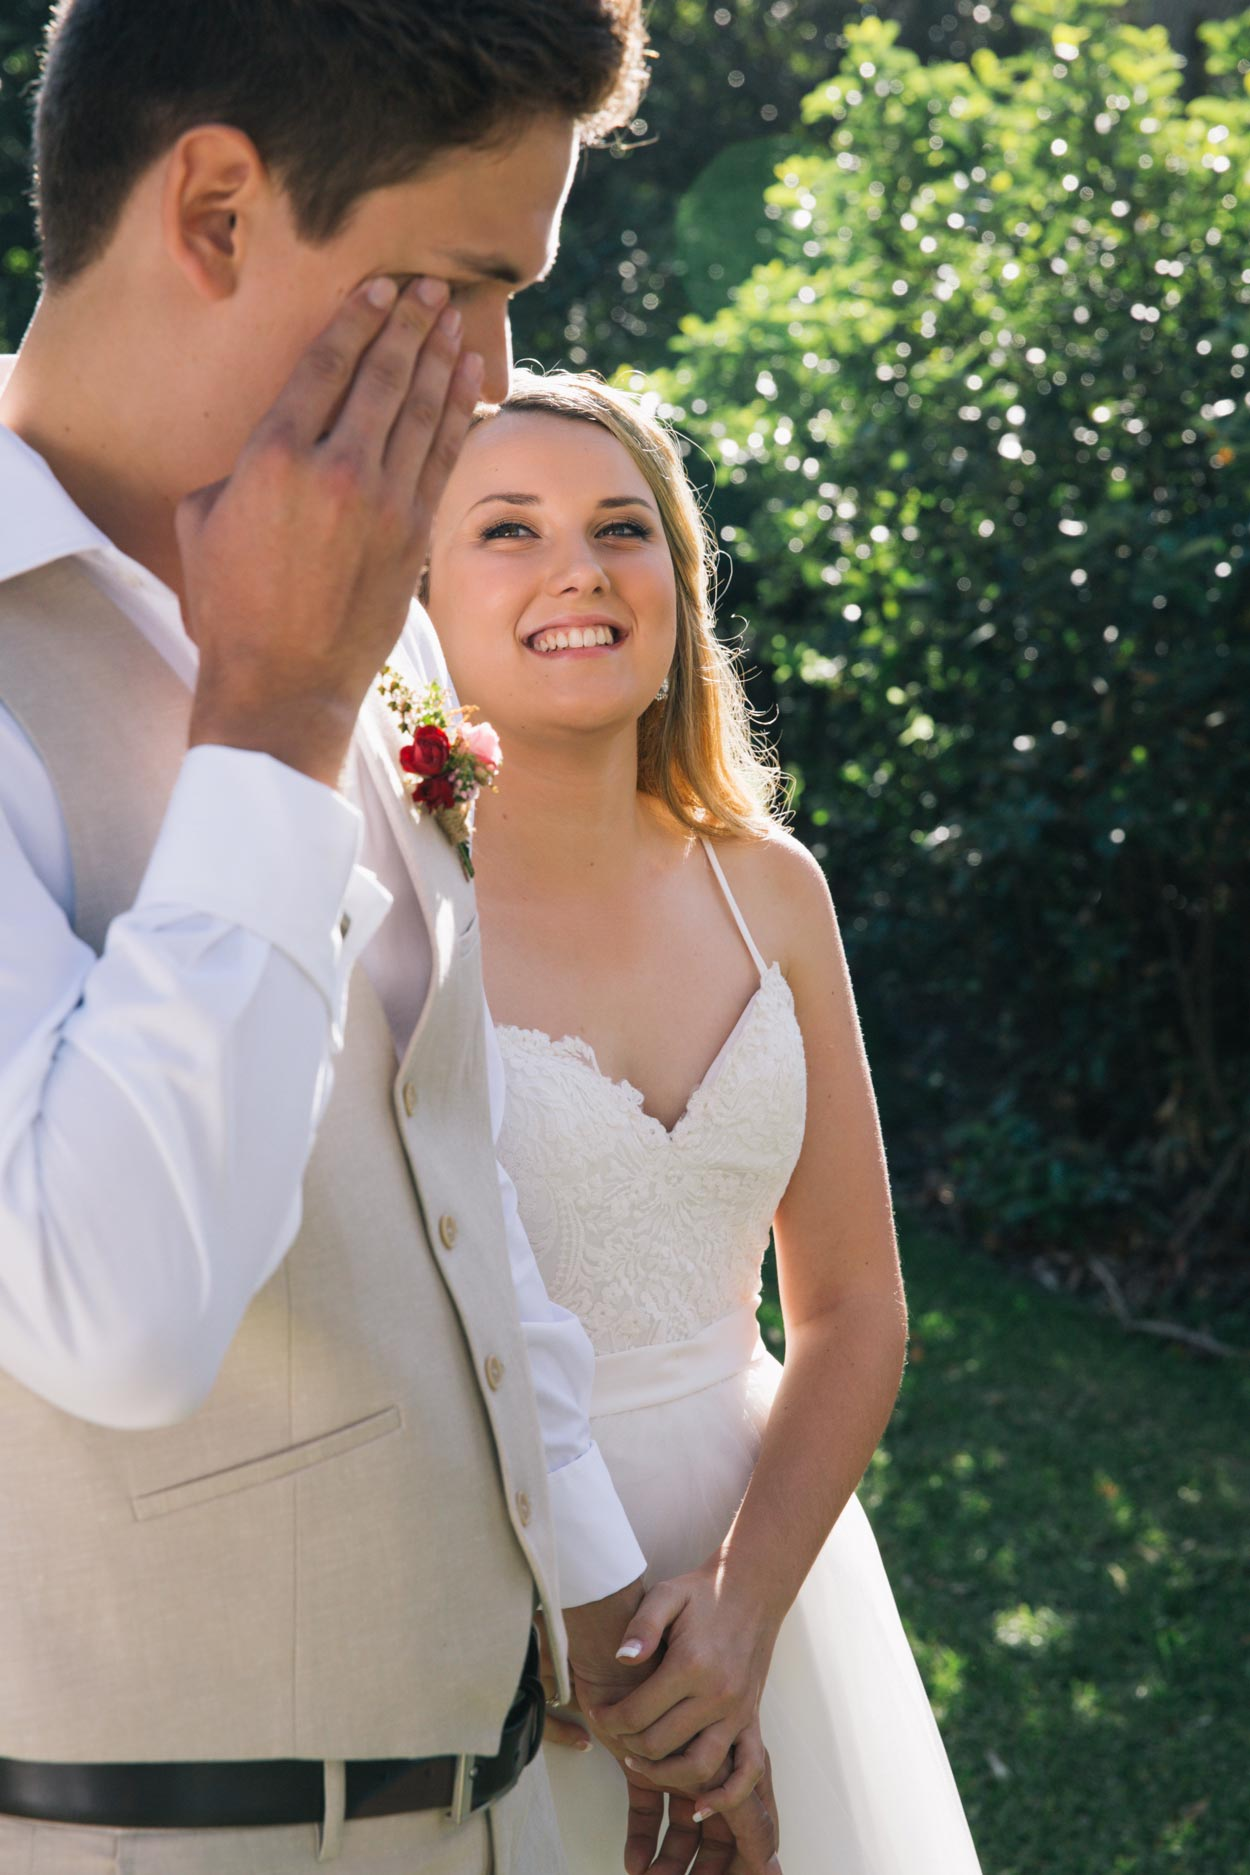 Emotional Hidden Grove Wedding - Sunshine Coast, Australian Photographer (Noosa)